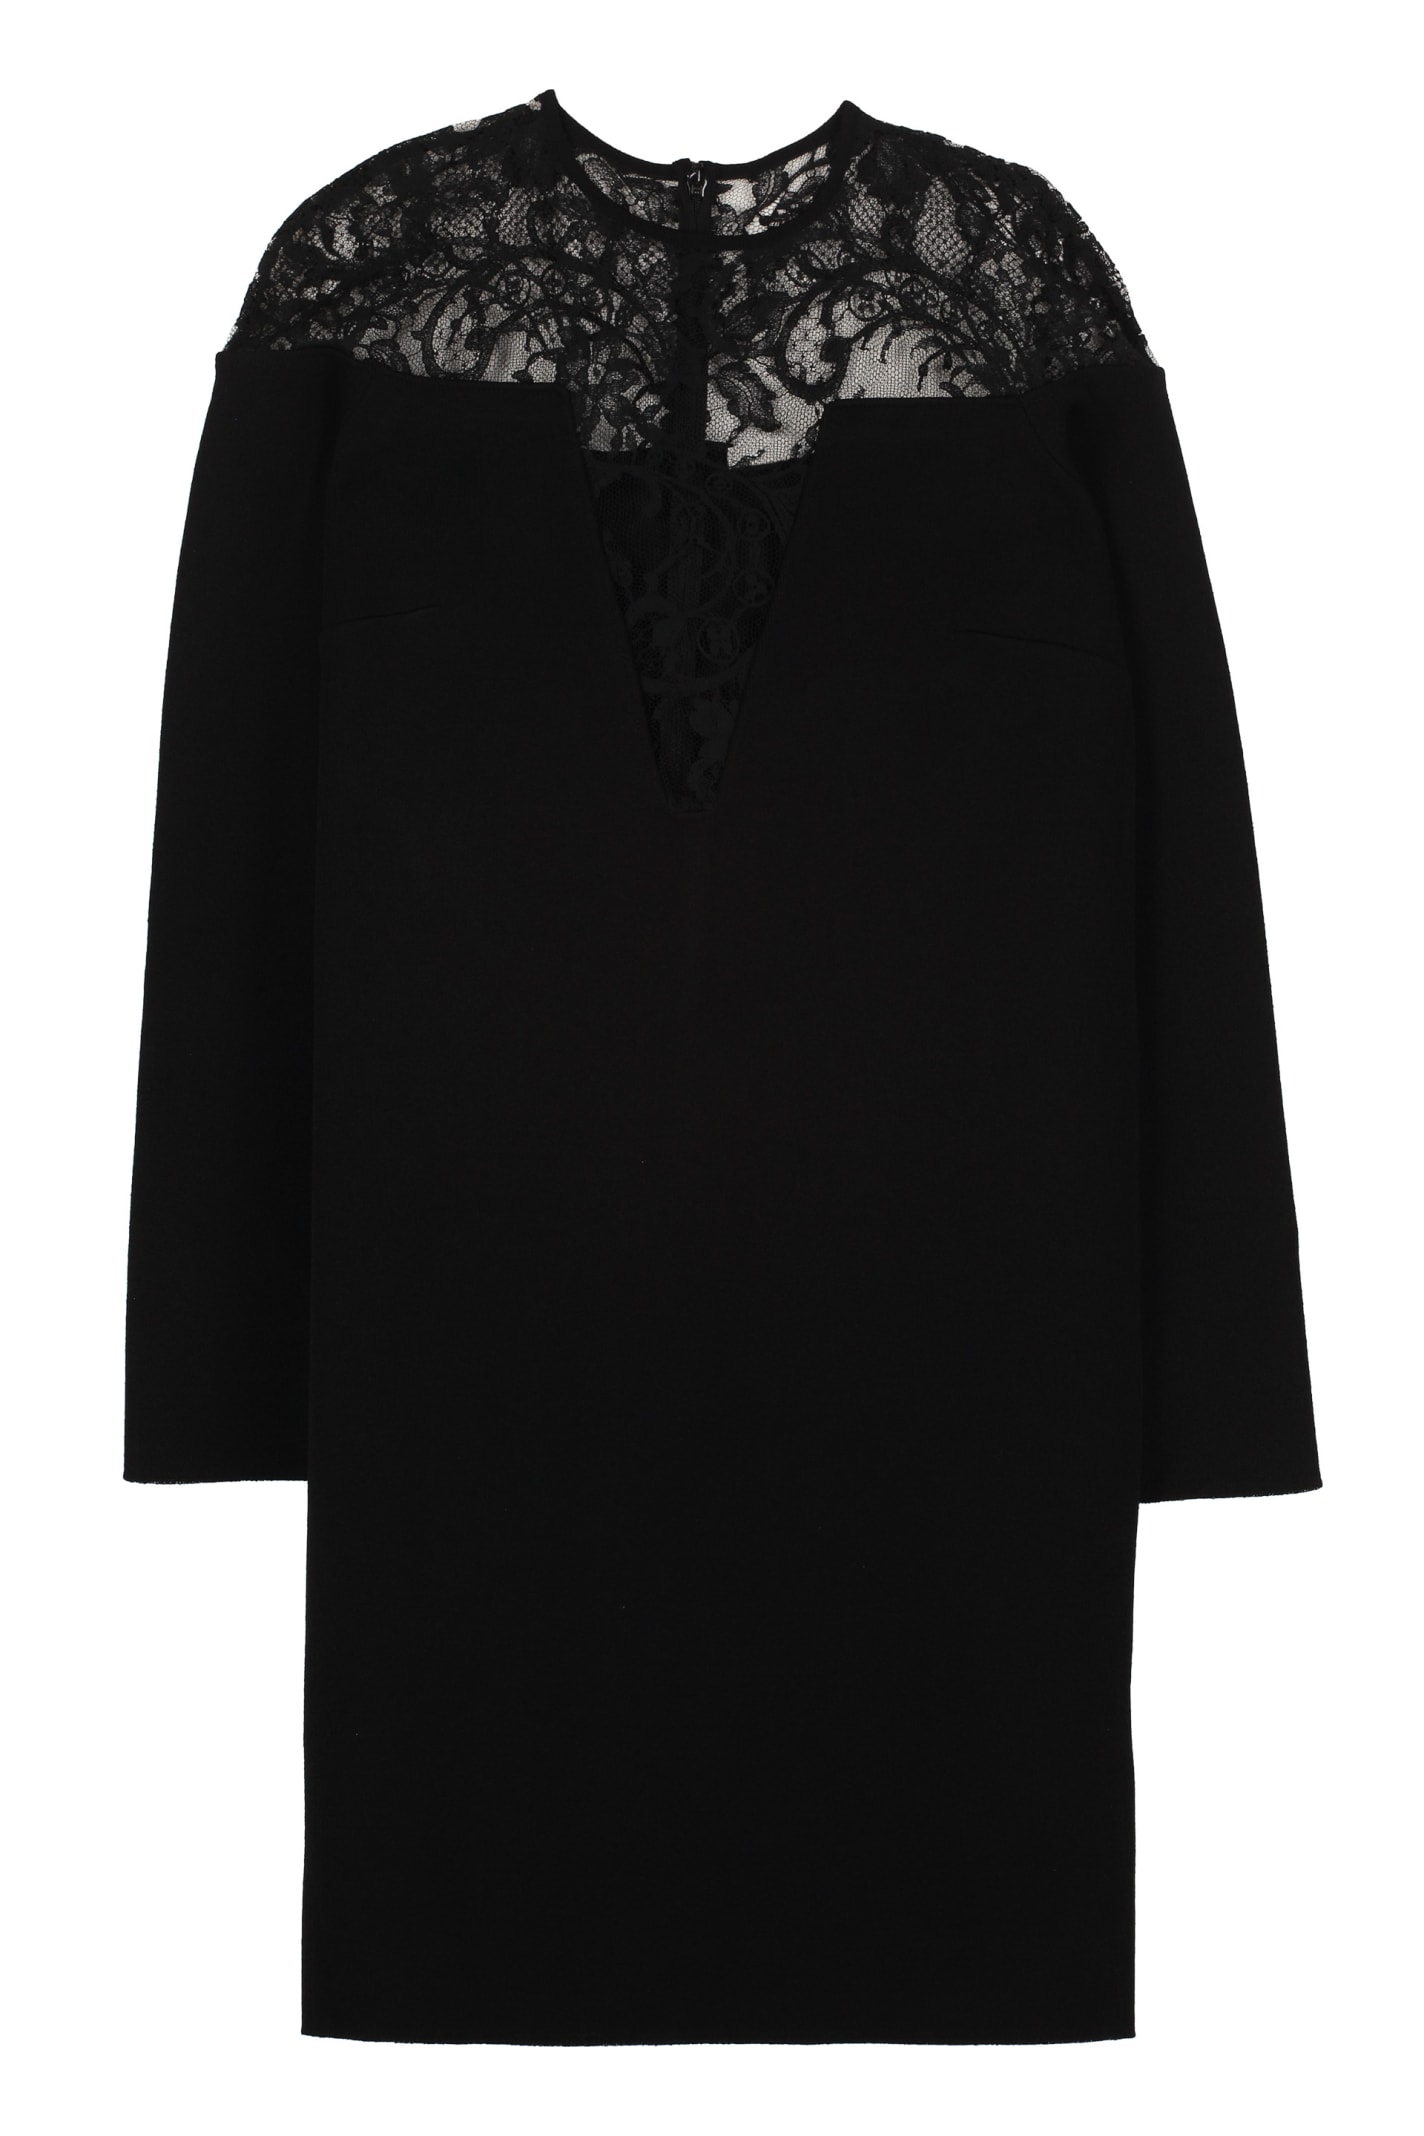 Givenchy Lace Detail Knitted Dress